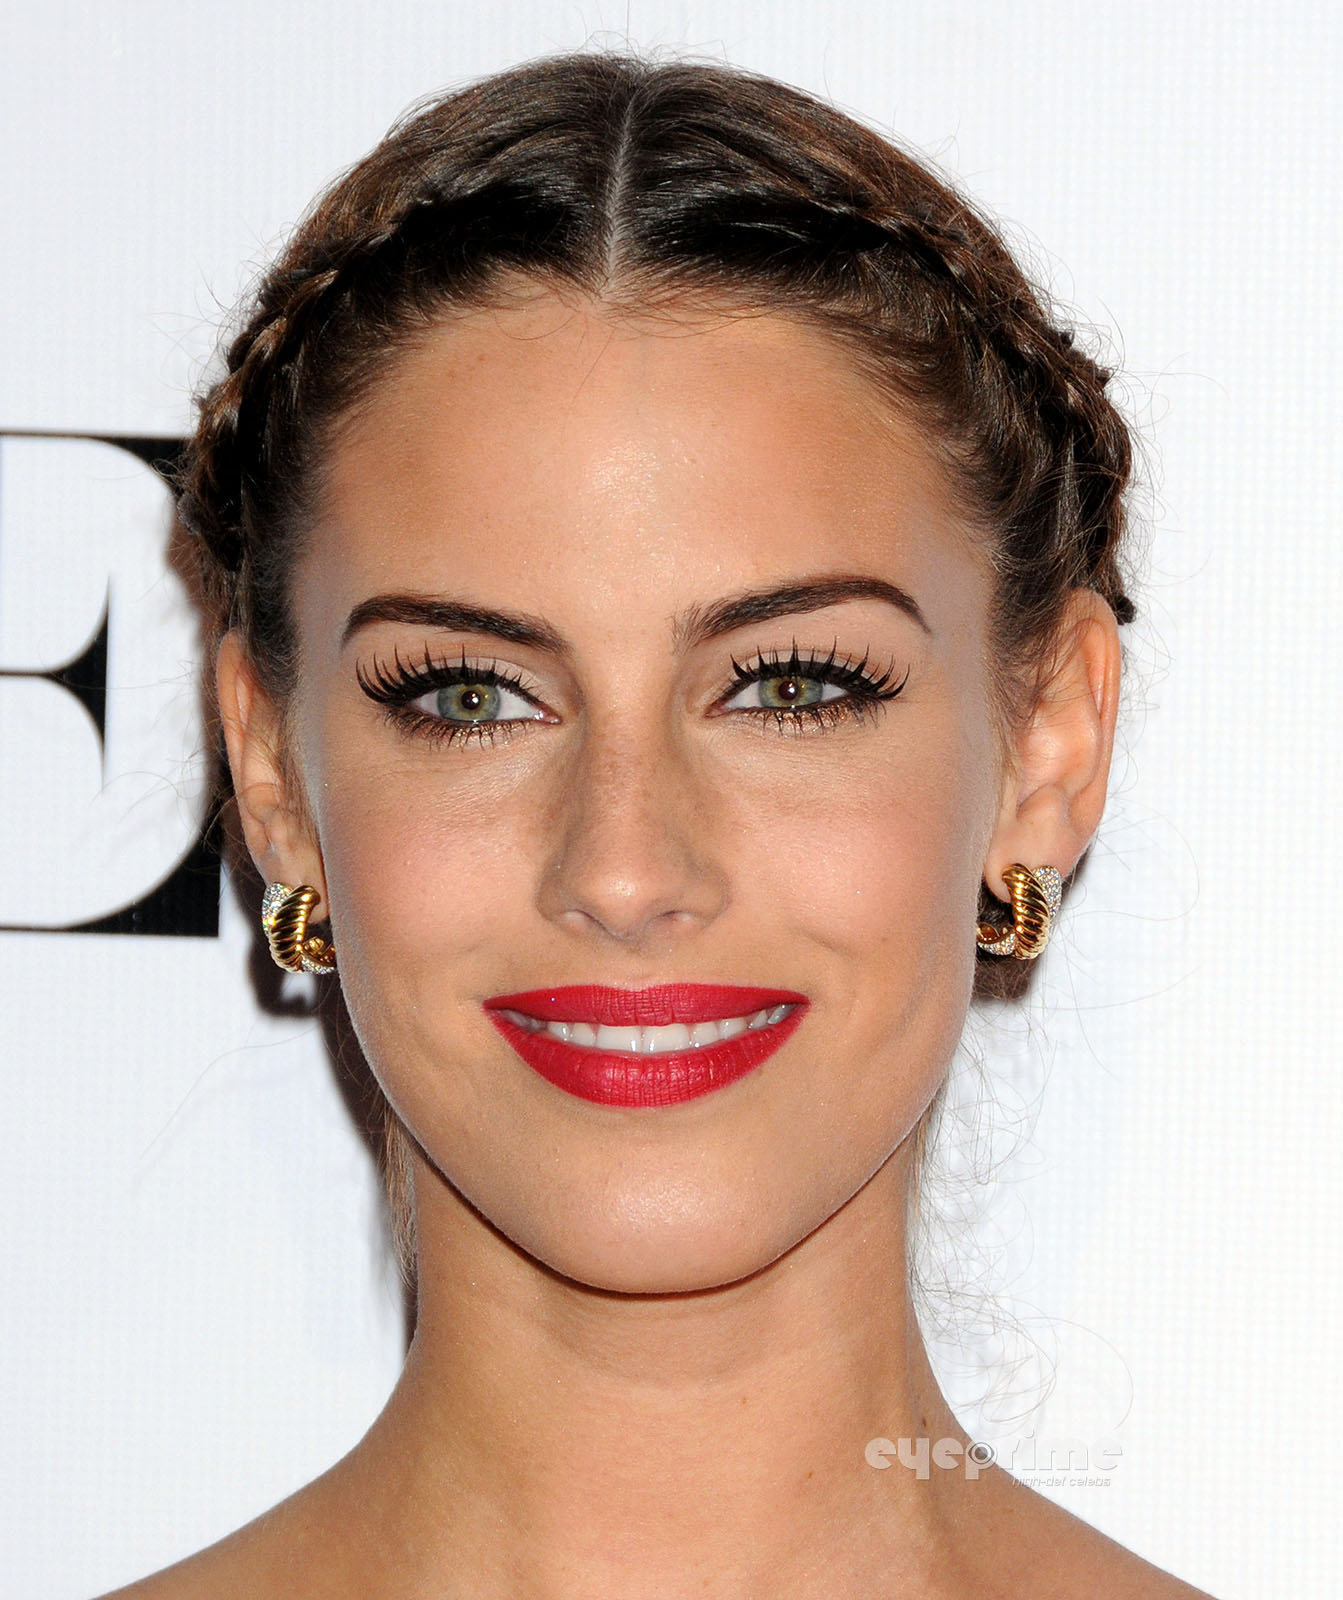 Have removed Jessica lowndes young sorry